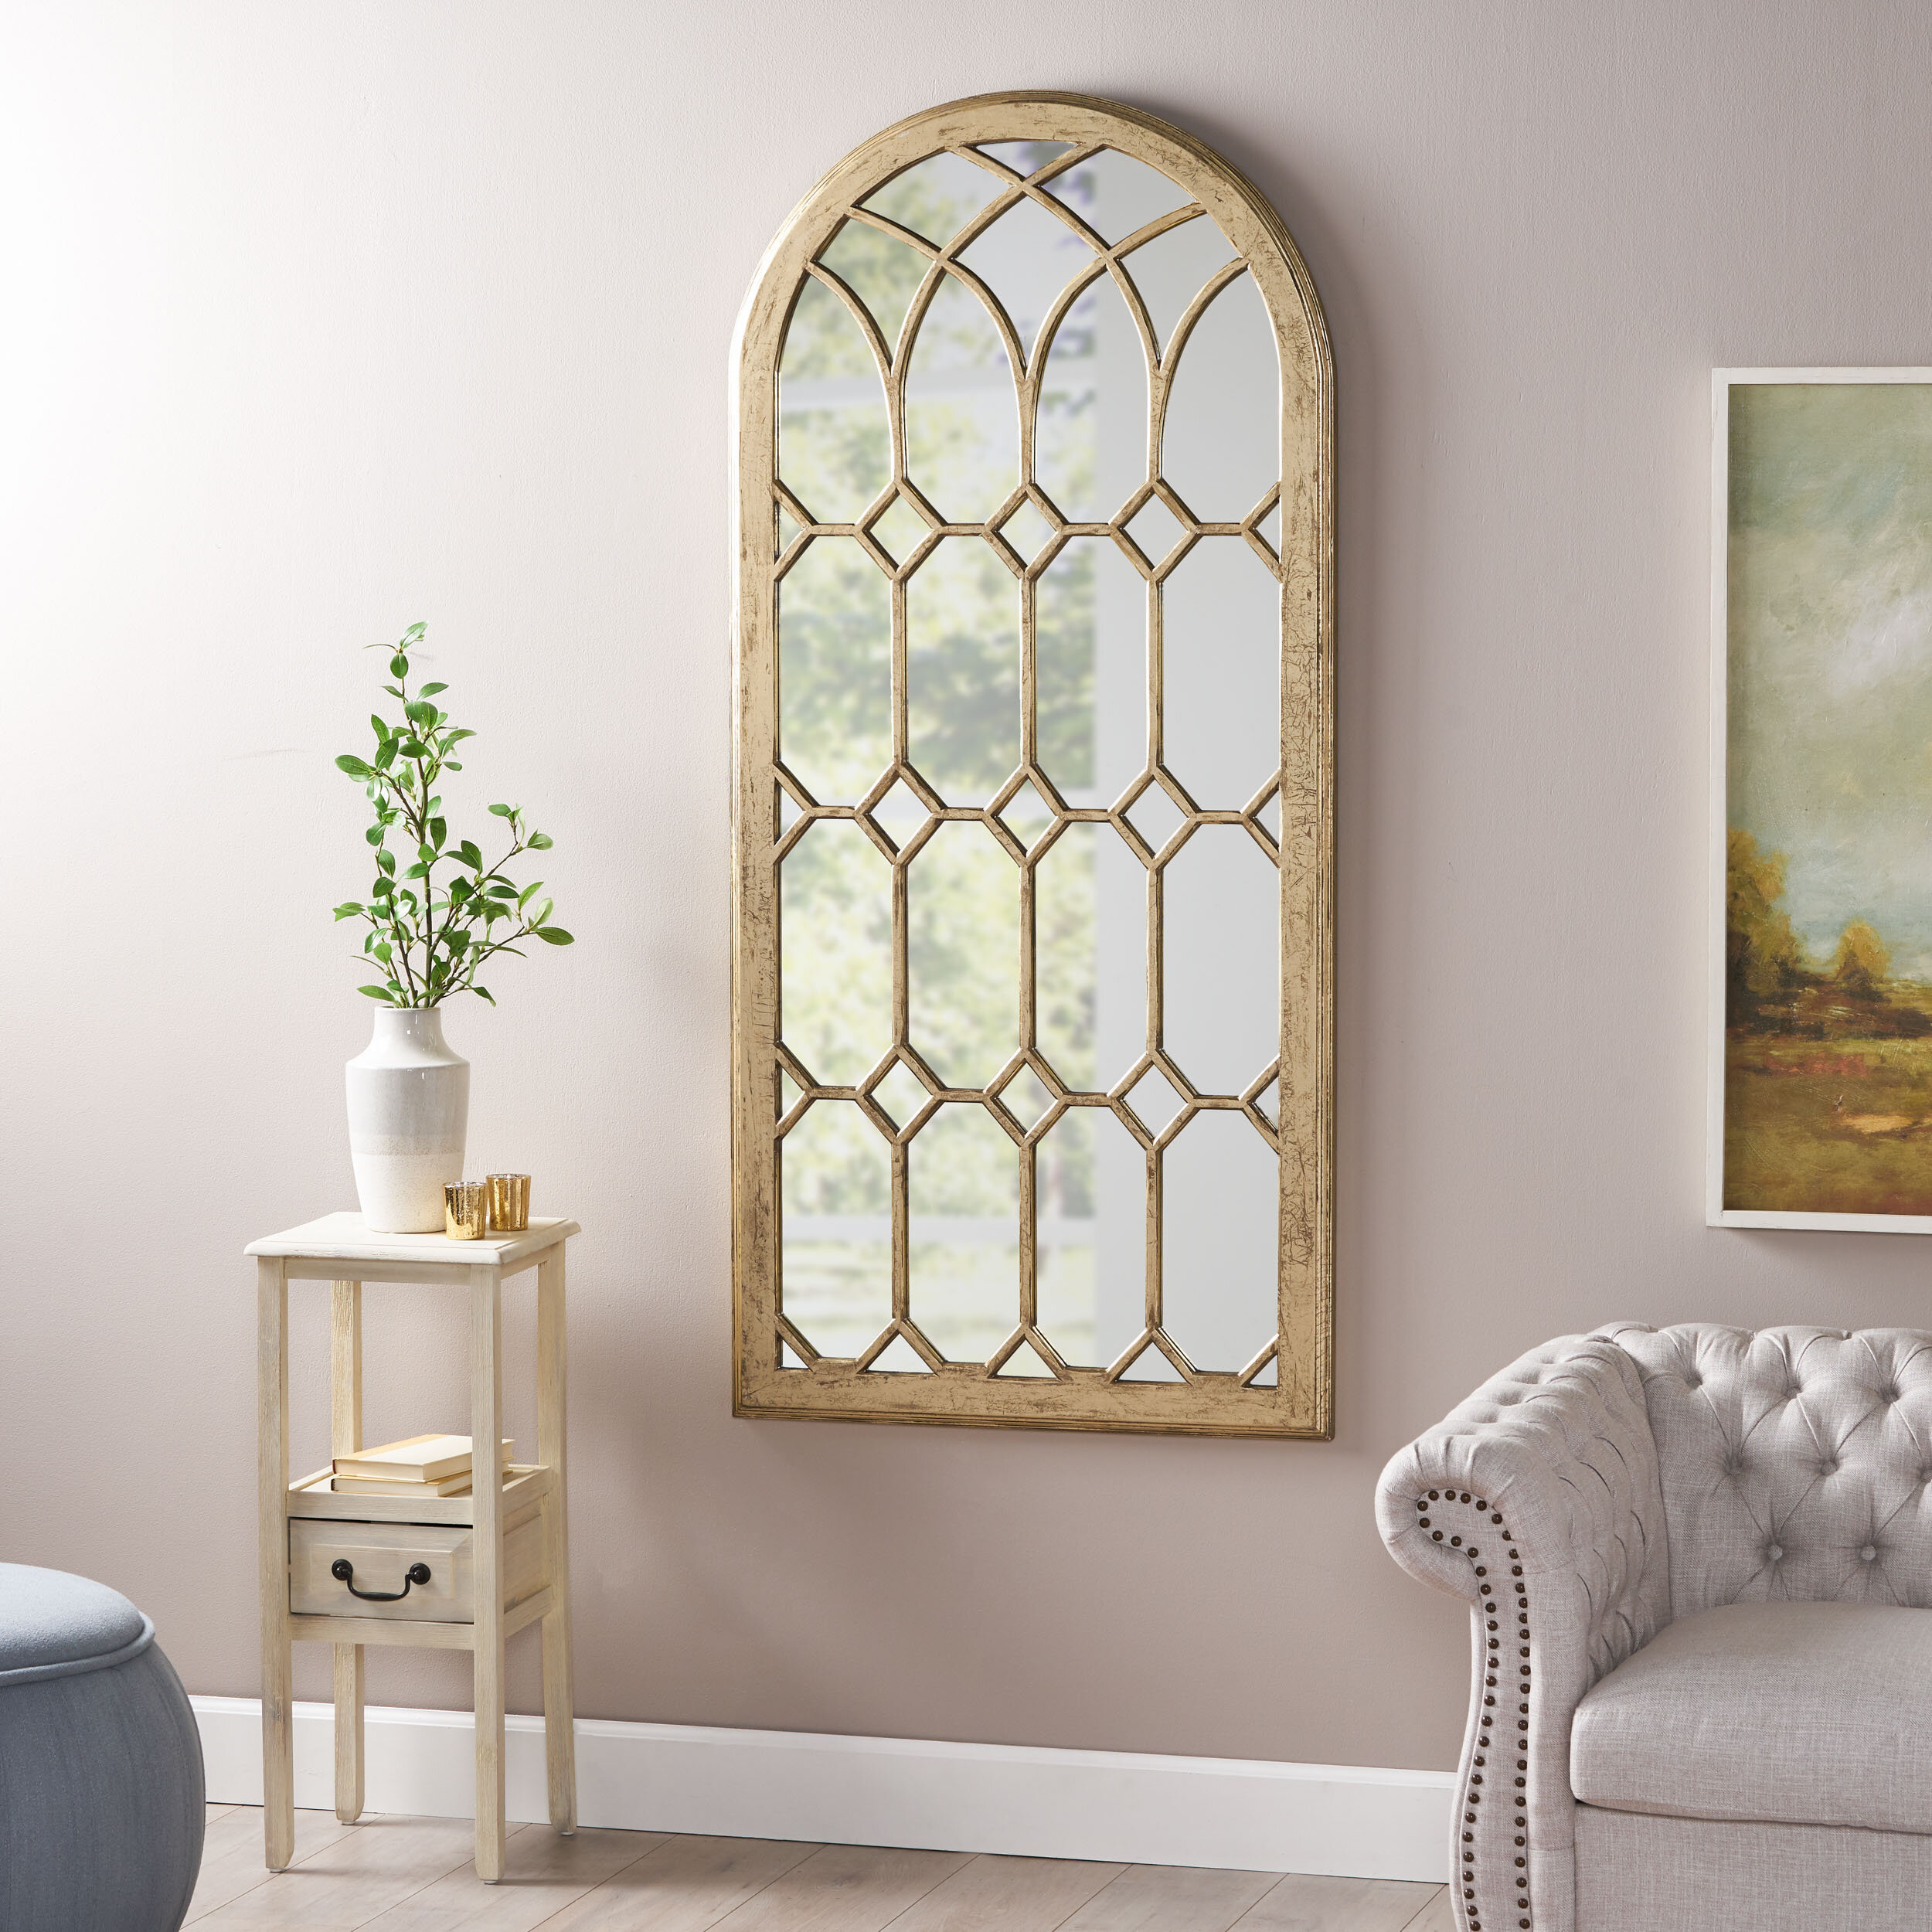 Ophelia Co Aenwood Arched Traditional Accent Mirror Reviews Wayfair